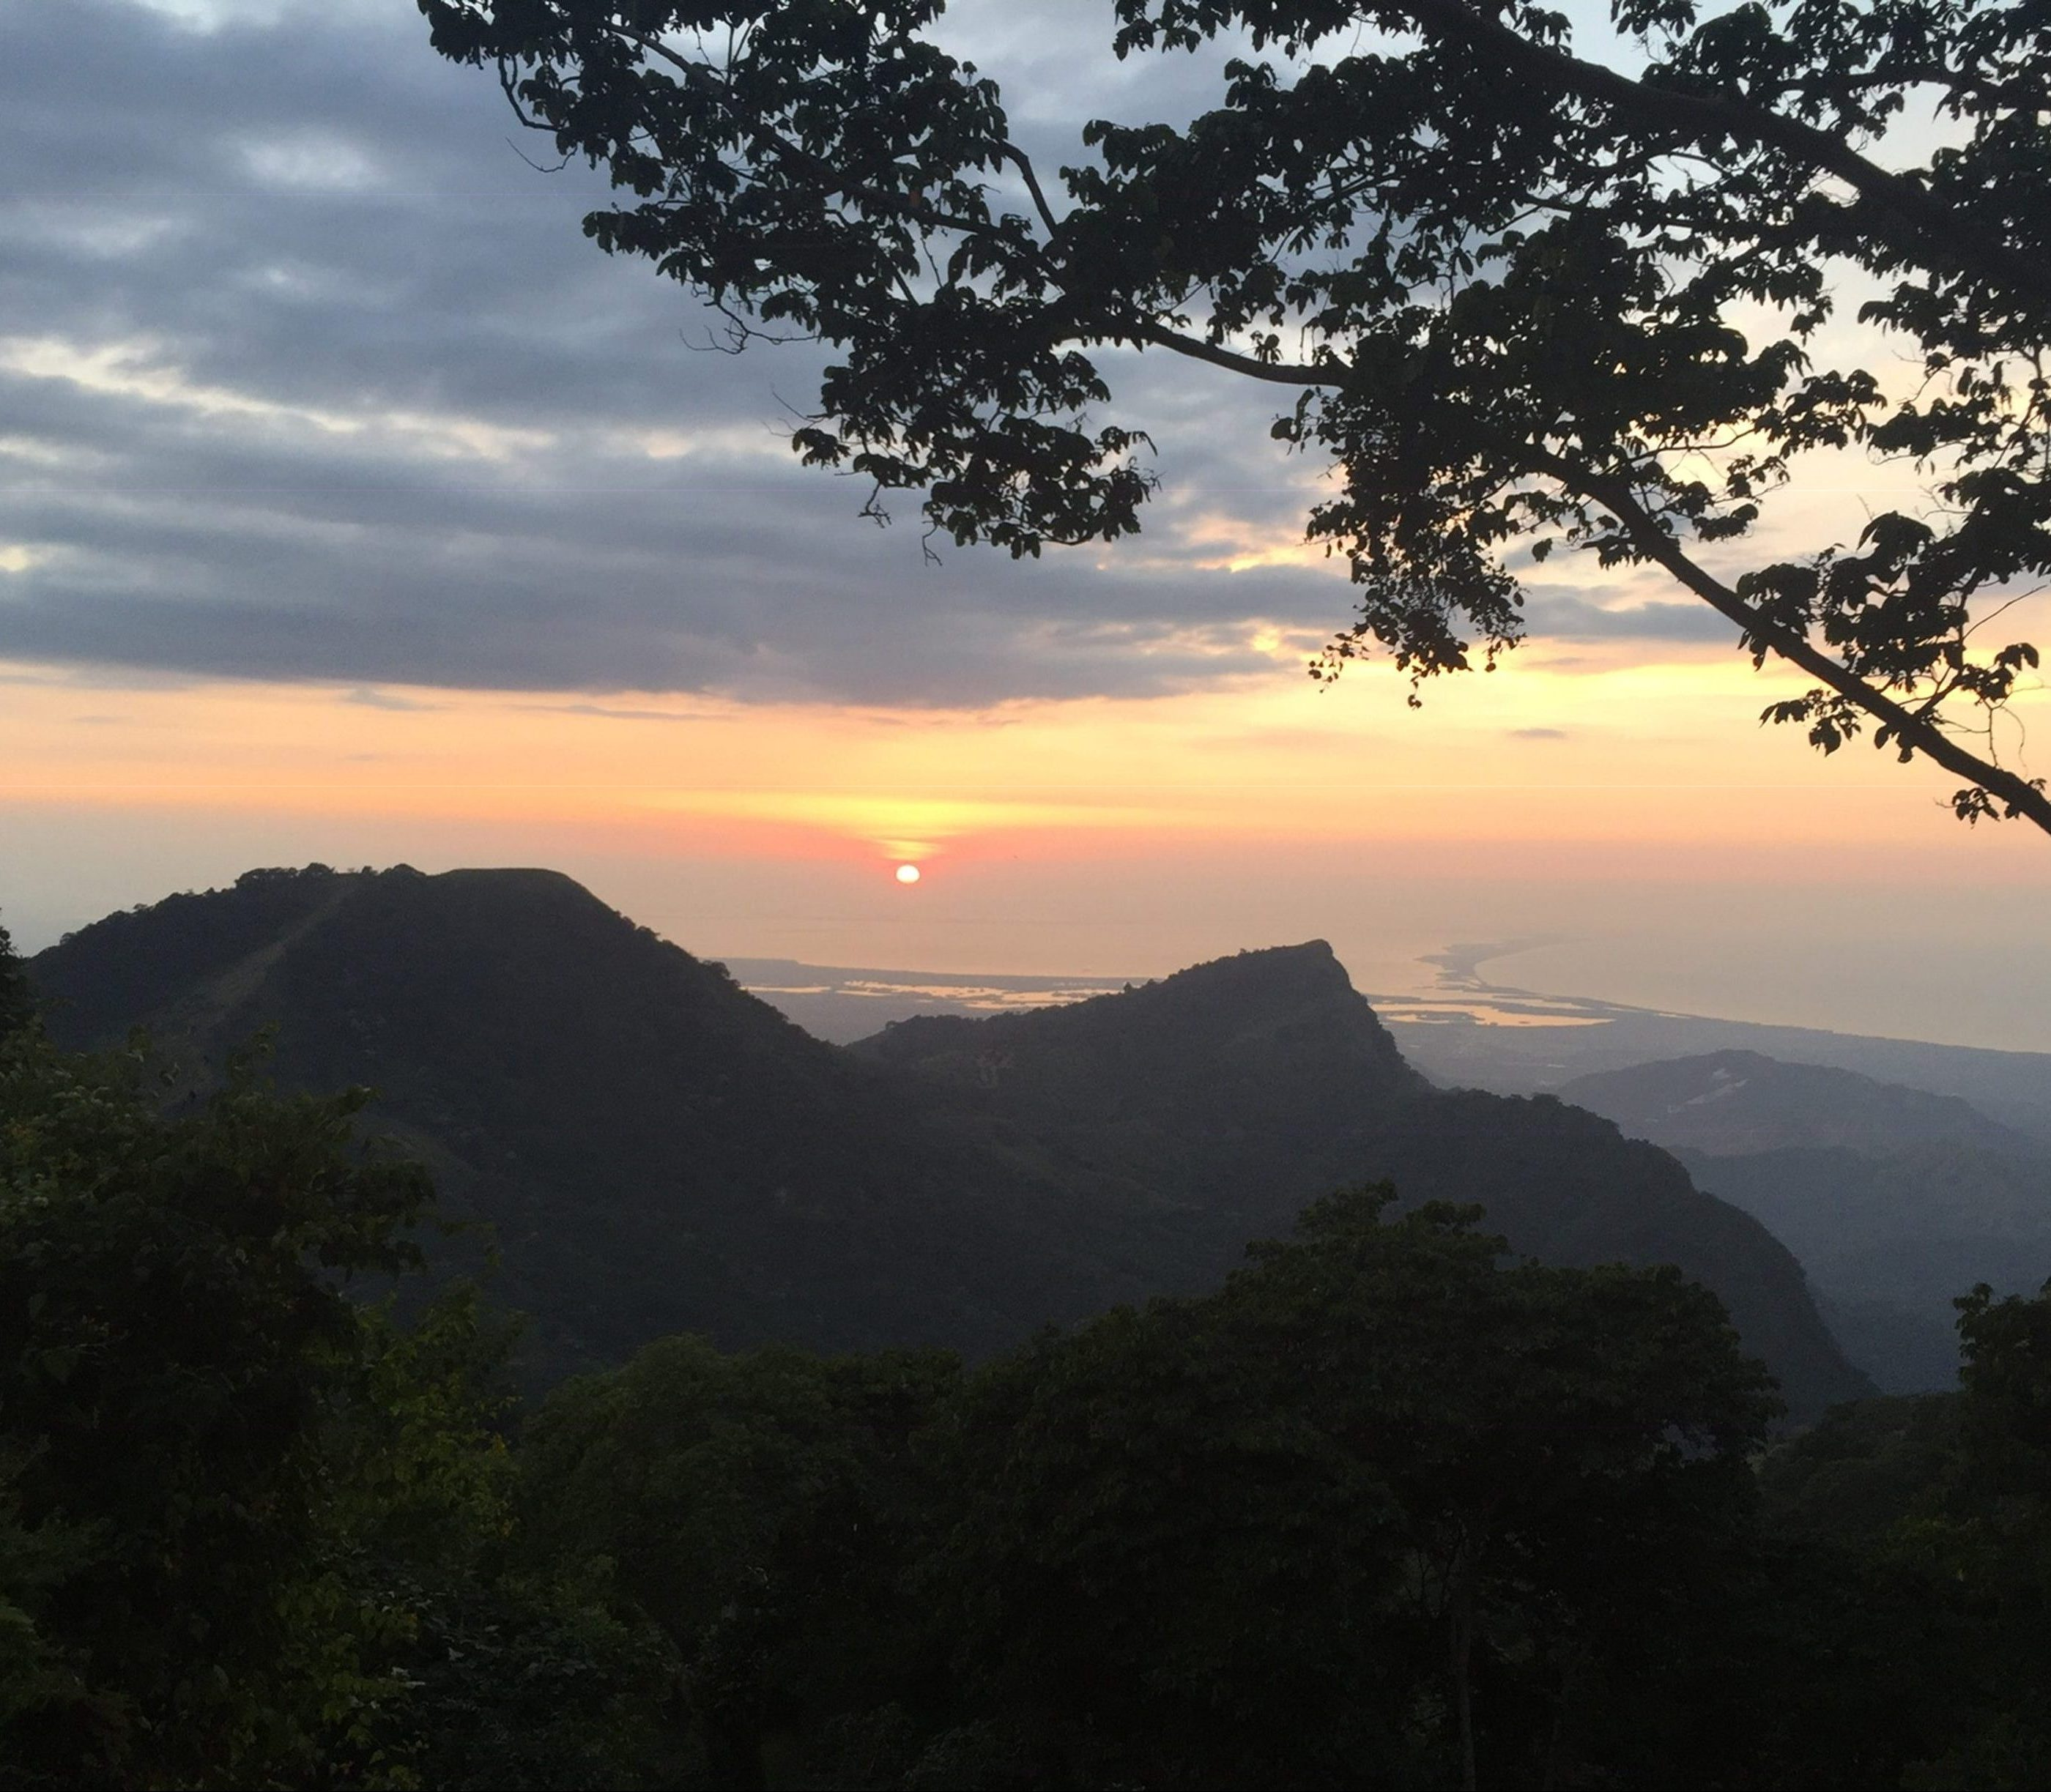 Sunset at the Sierra Nevada de Santa Marta, Magdalena, Colombia, 2018